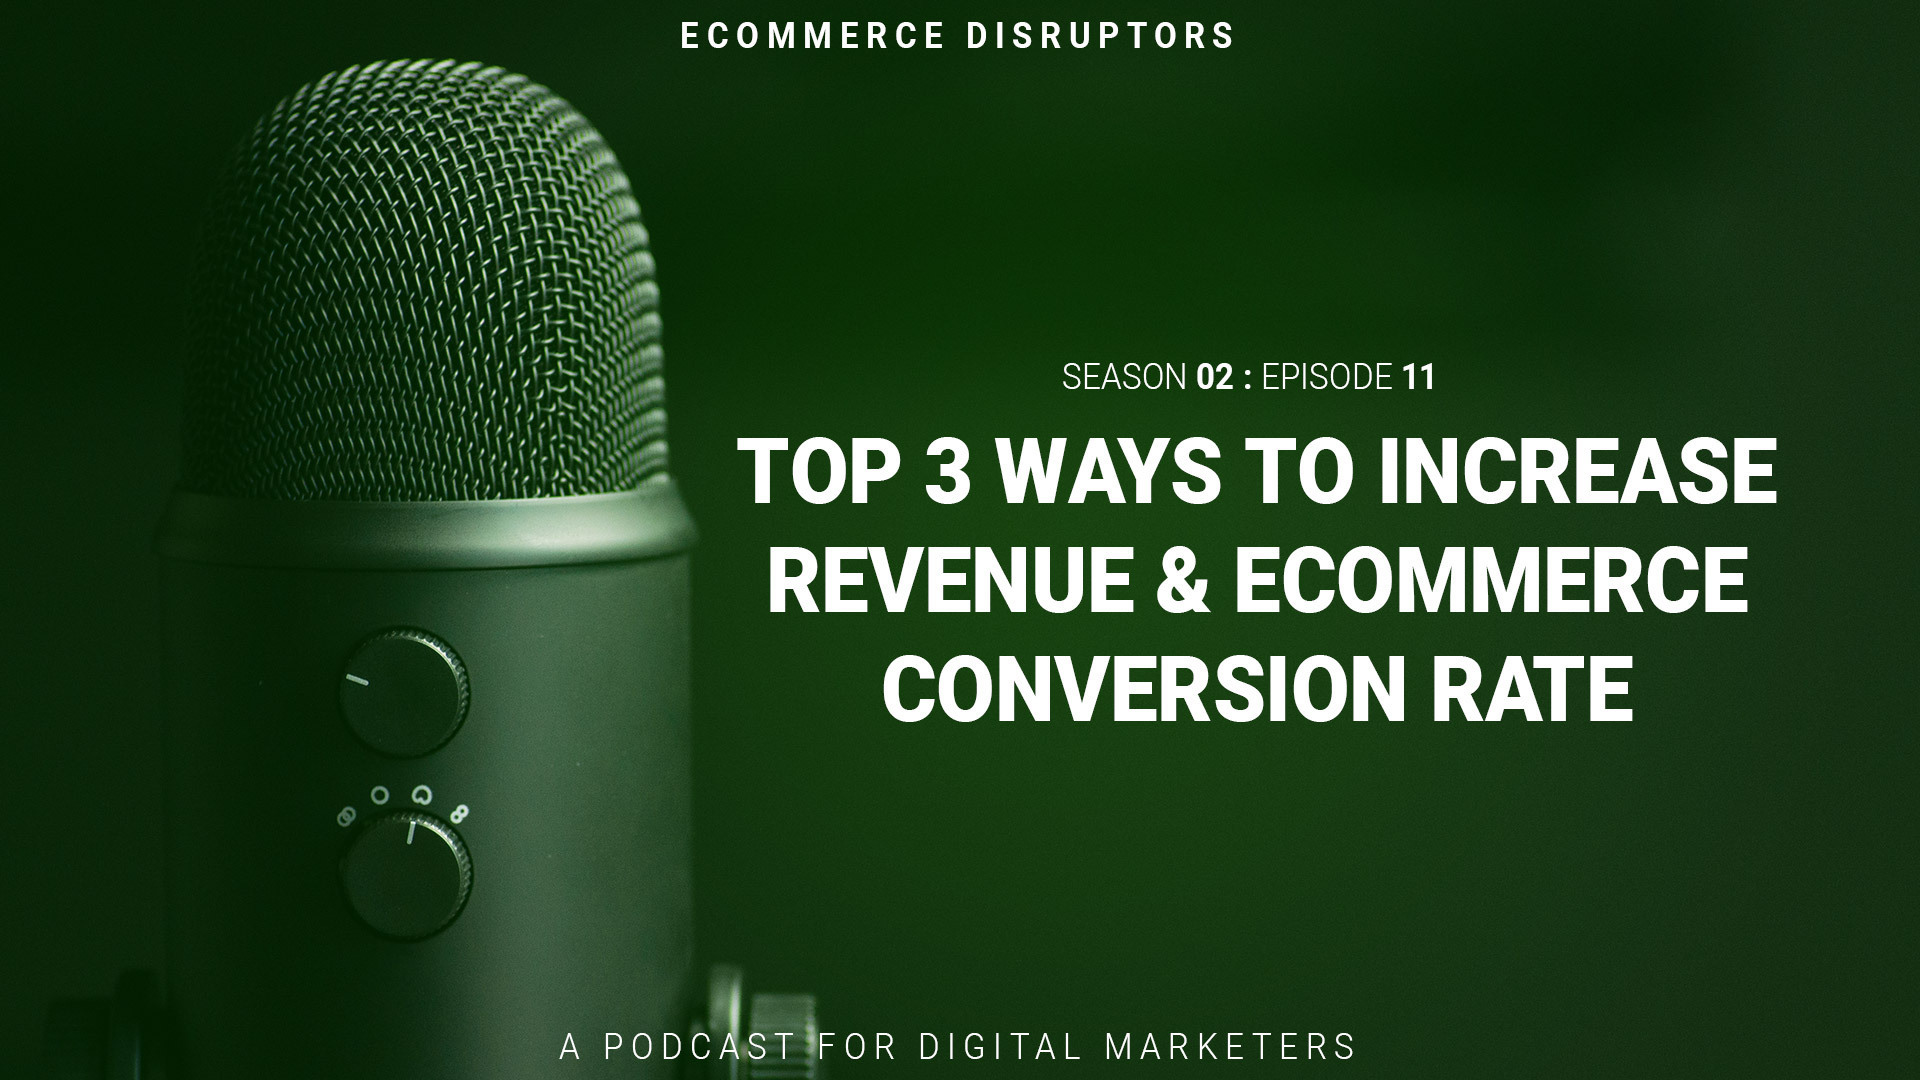 Top 3 Ways to Increase Revenue & Ecommerce Conversion Rate